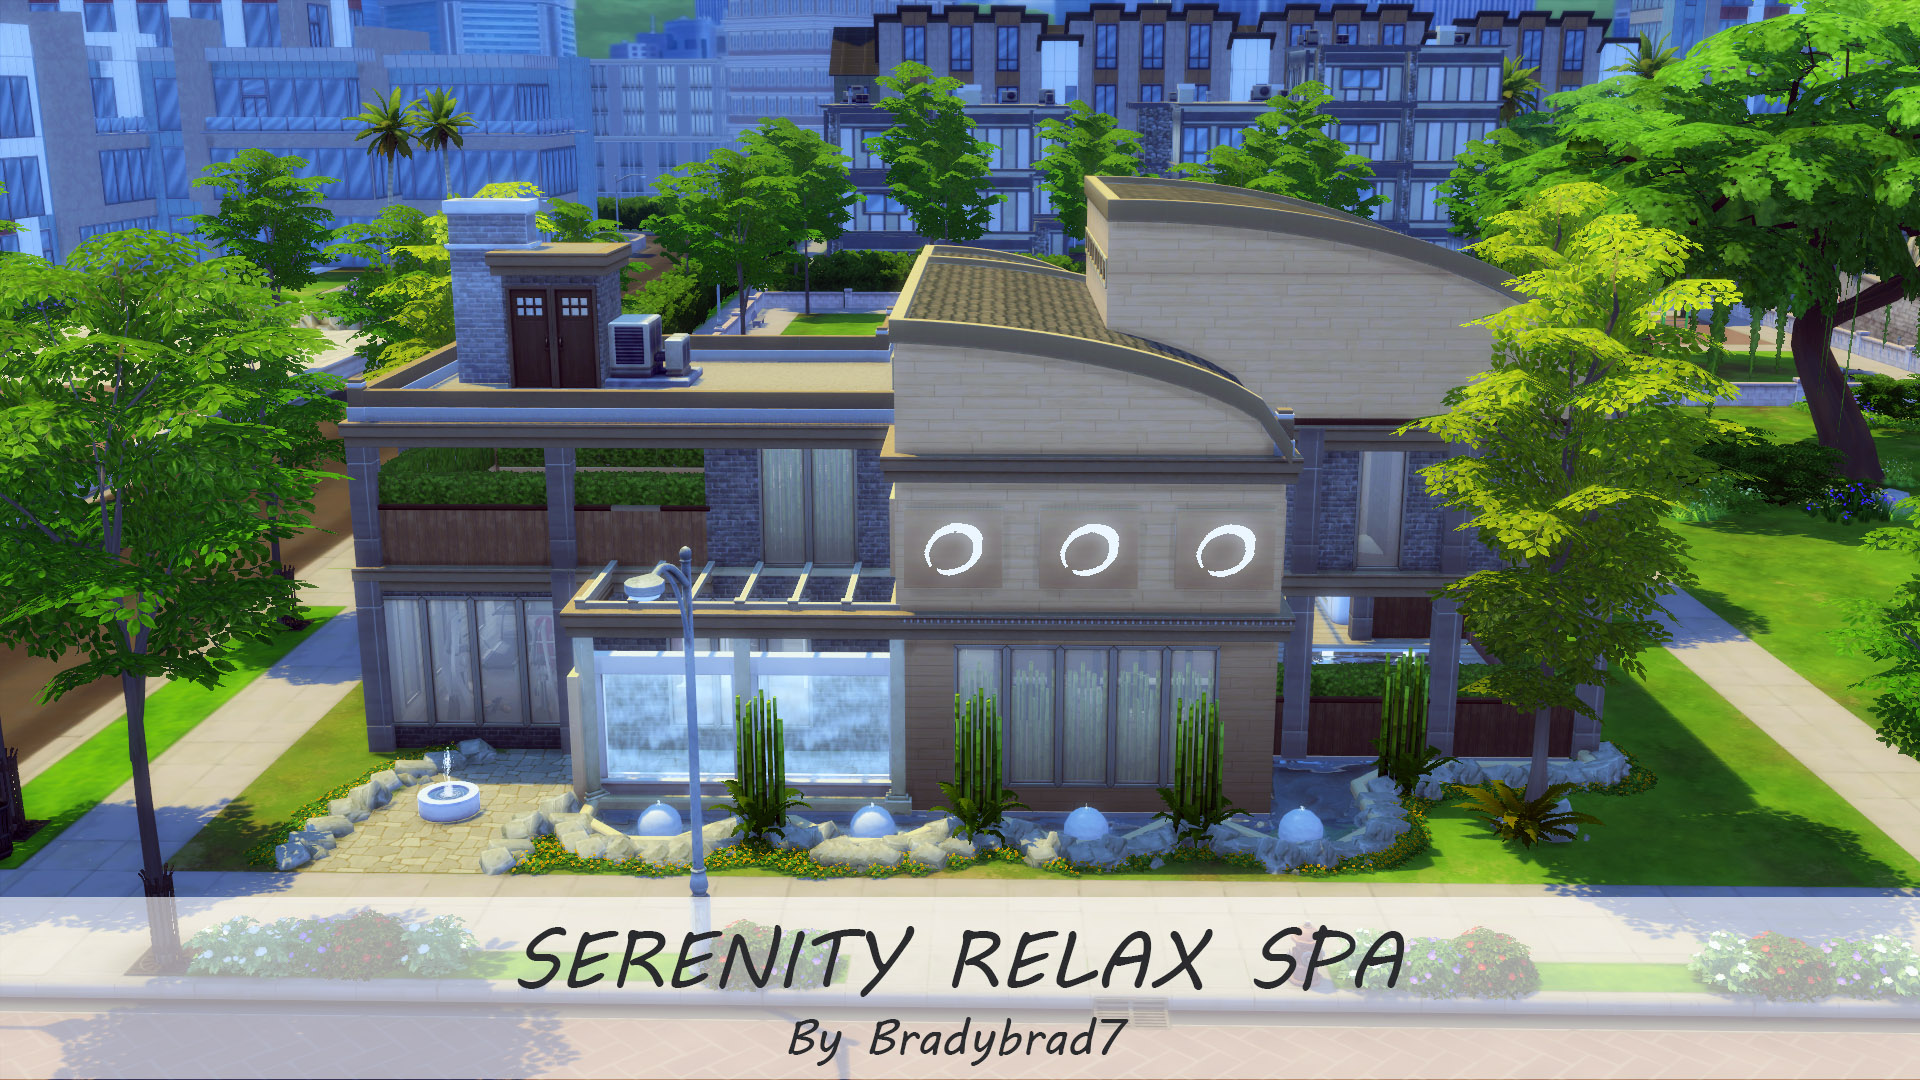 Mod The Sims Serenity Relax Spa No Cc